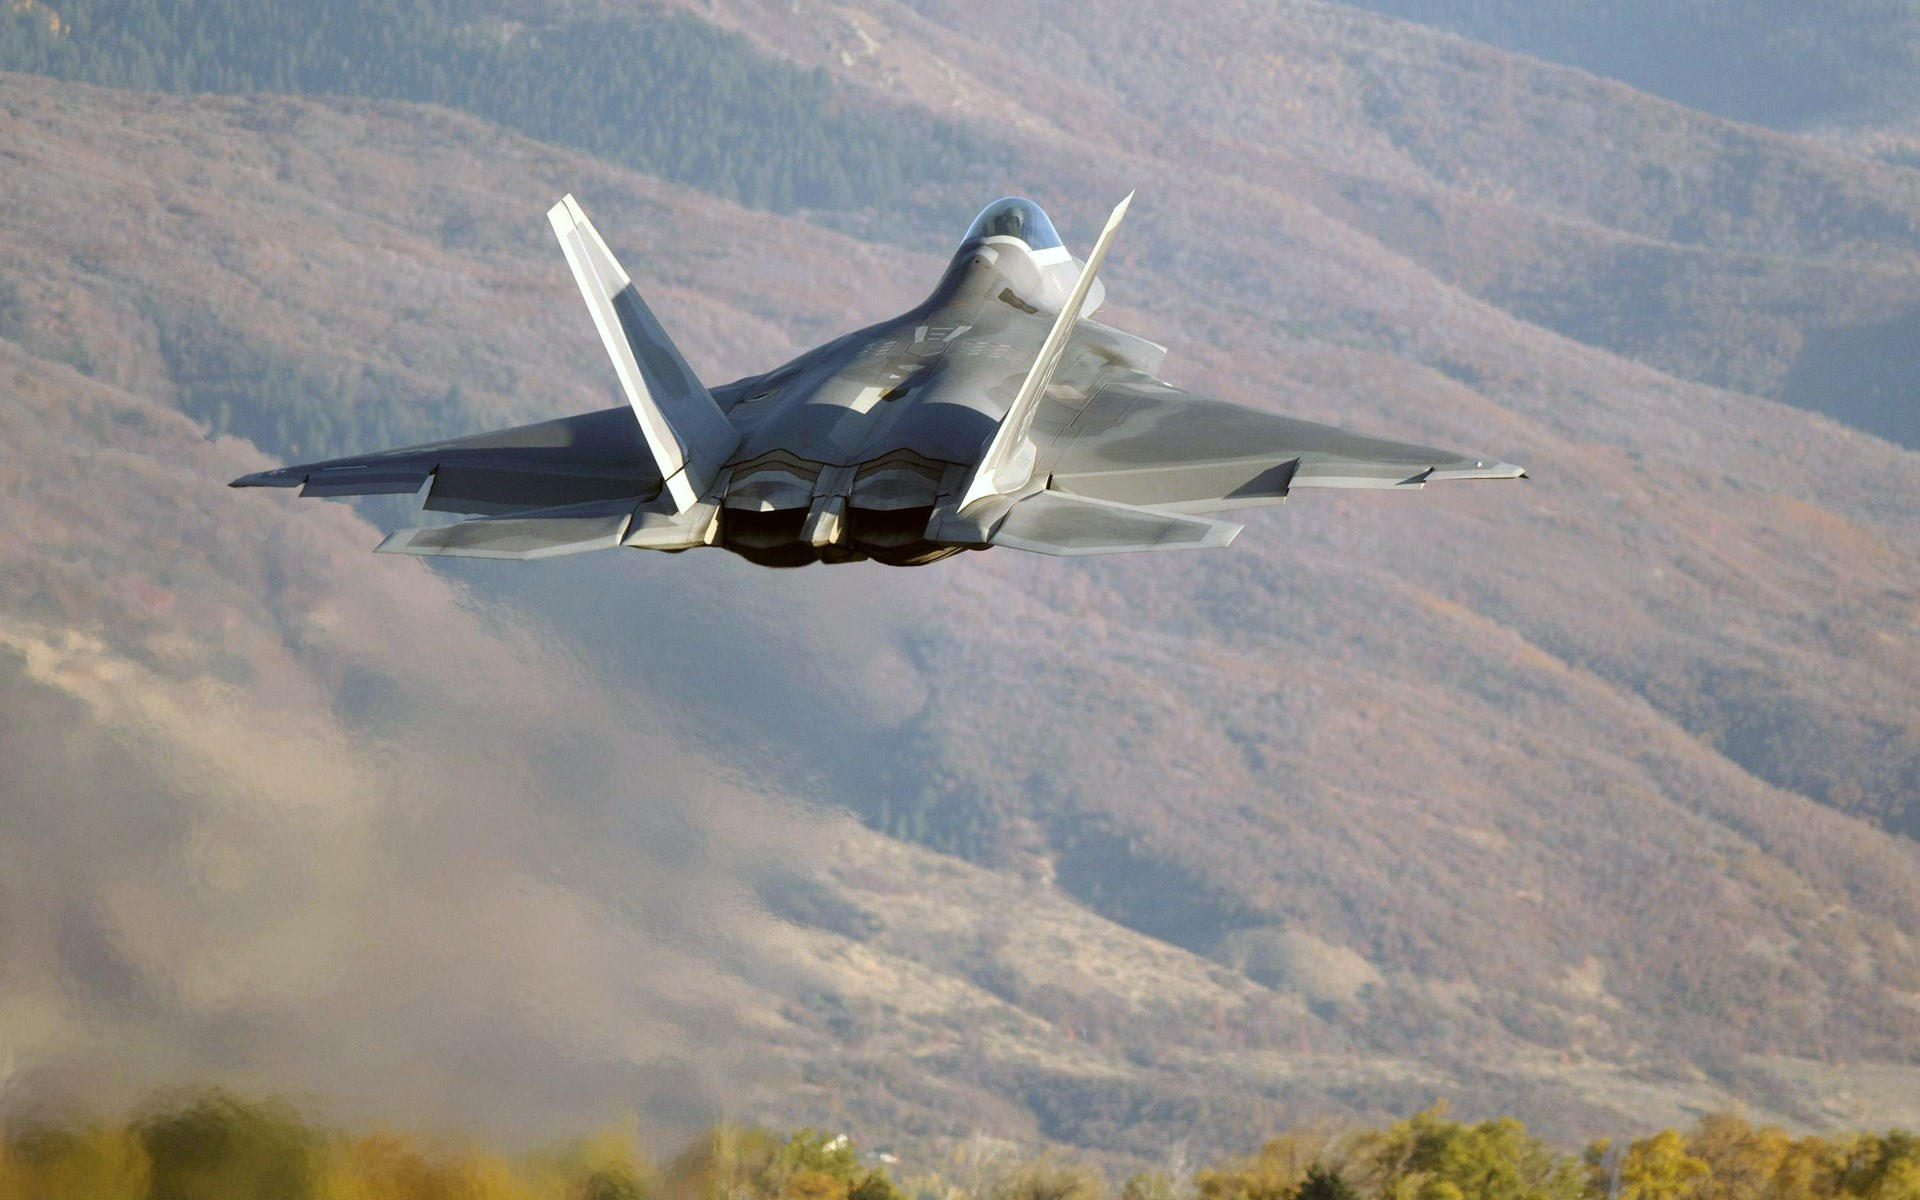 Backgrounds-In-High-Quality-f-raptor-image-by-Prentice-Chester-wallpaper-wpc9002551